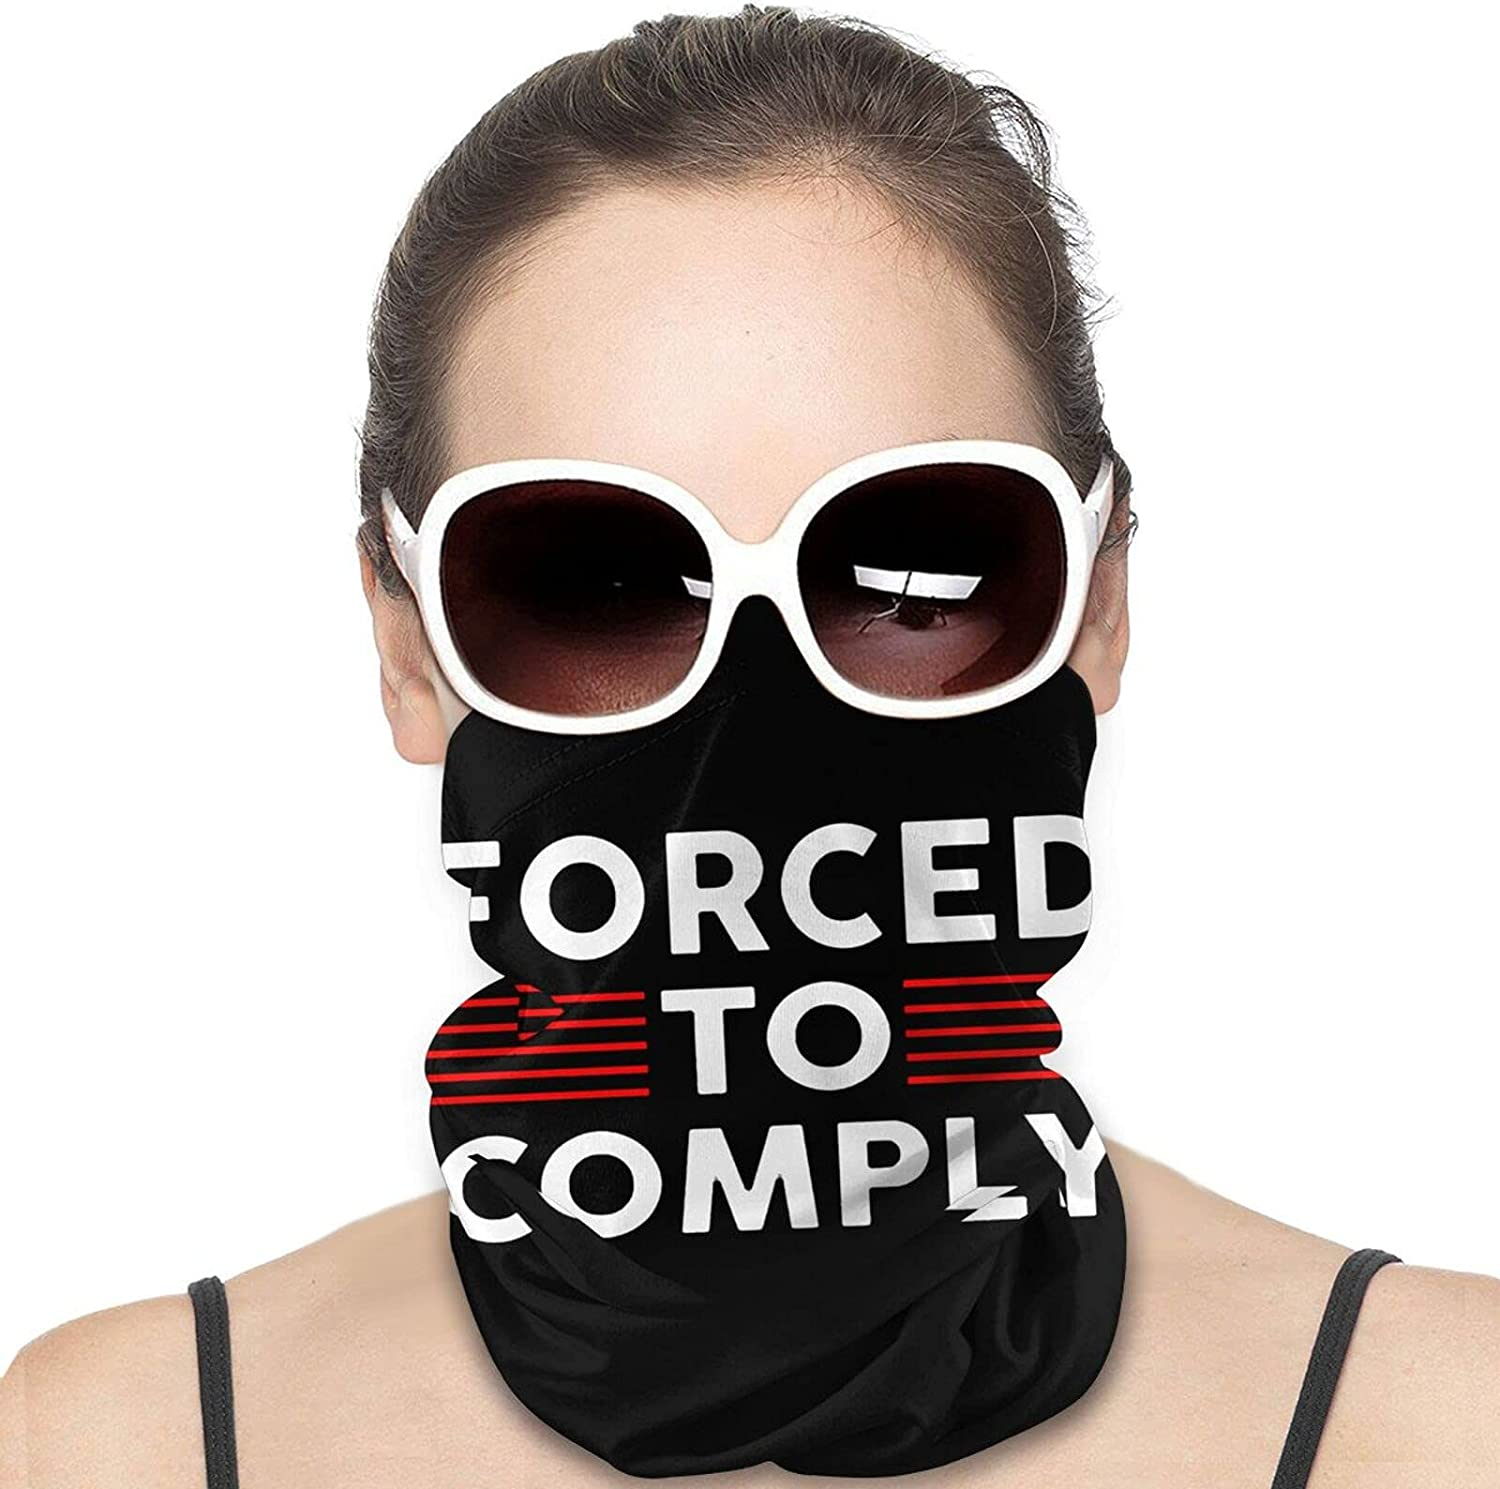 Forced to Comply Round Neck Gaiter Bandnas Face Cover Uv Protection Prevent bask in Ice Scarf Headbands Perfect for Motorcycle Cycling Running Festival Raves Outdoors